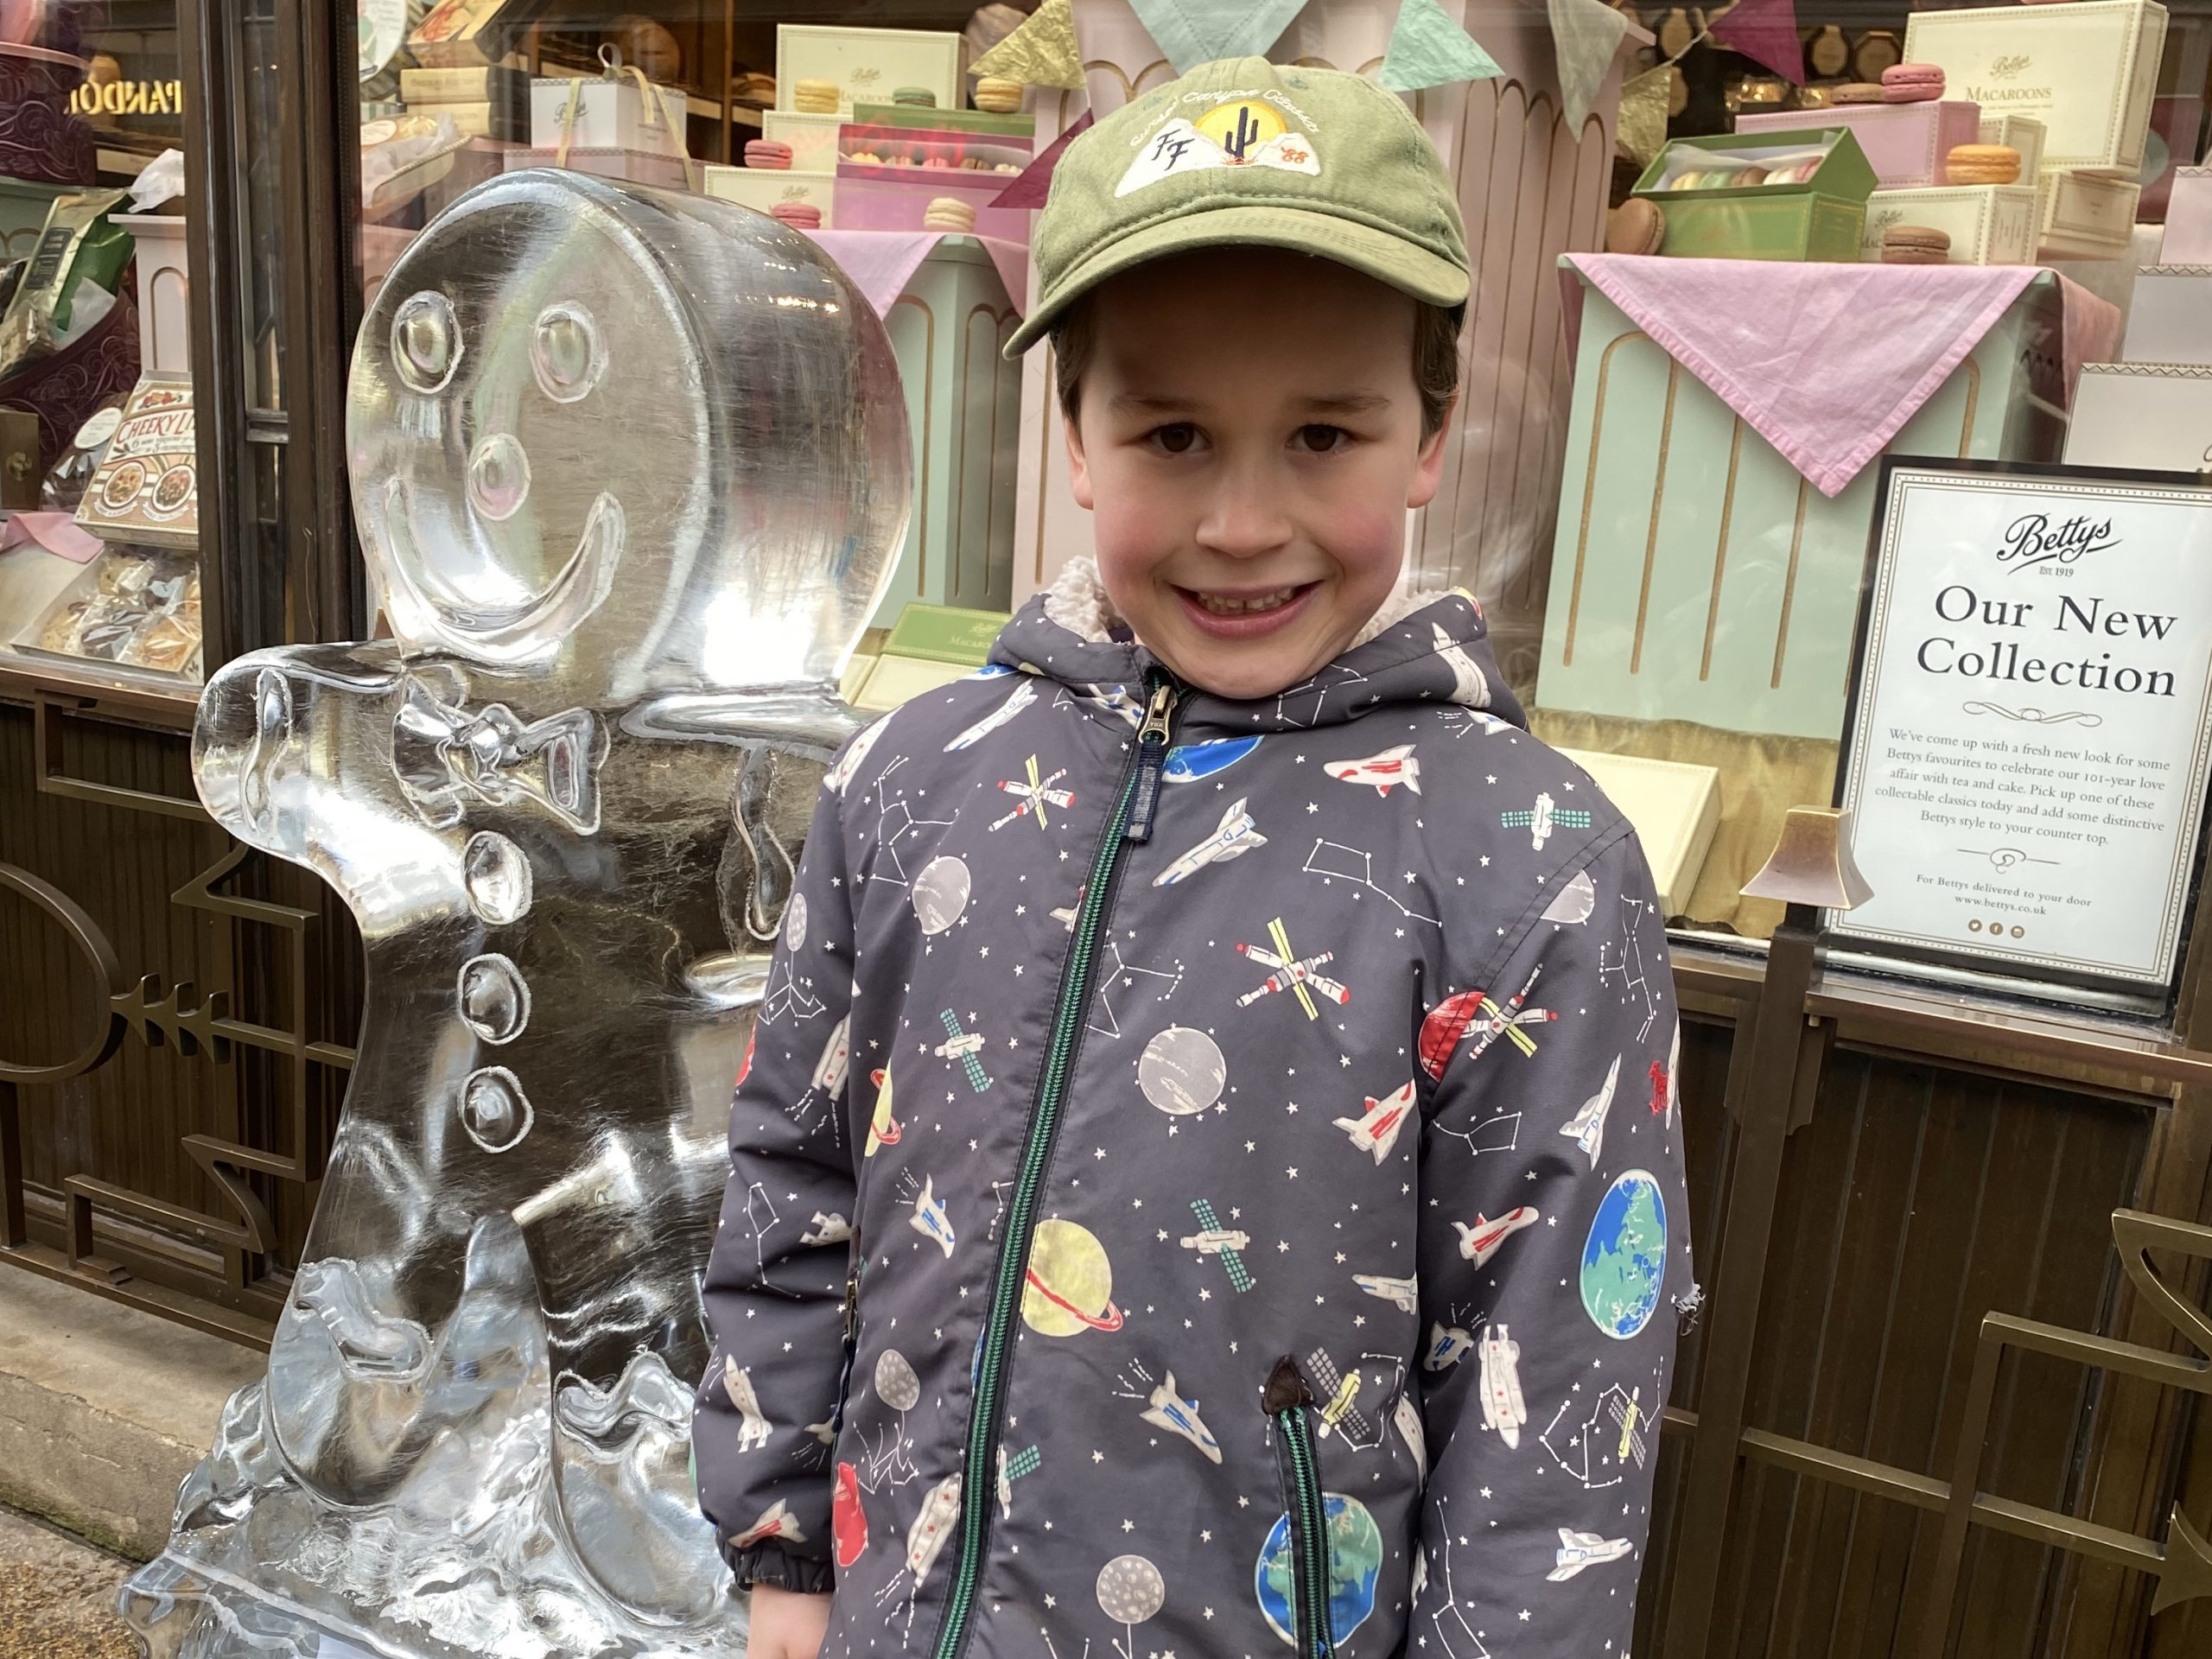 Family life outing with a boy stood next to a gingerbread man ice sculpture.